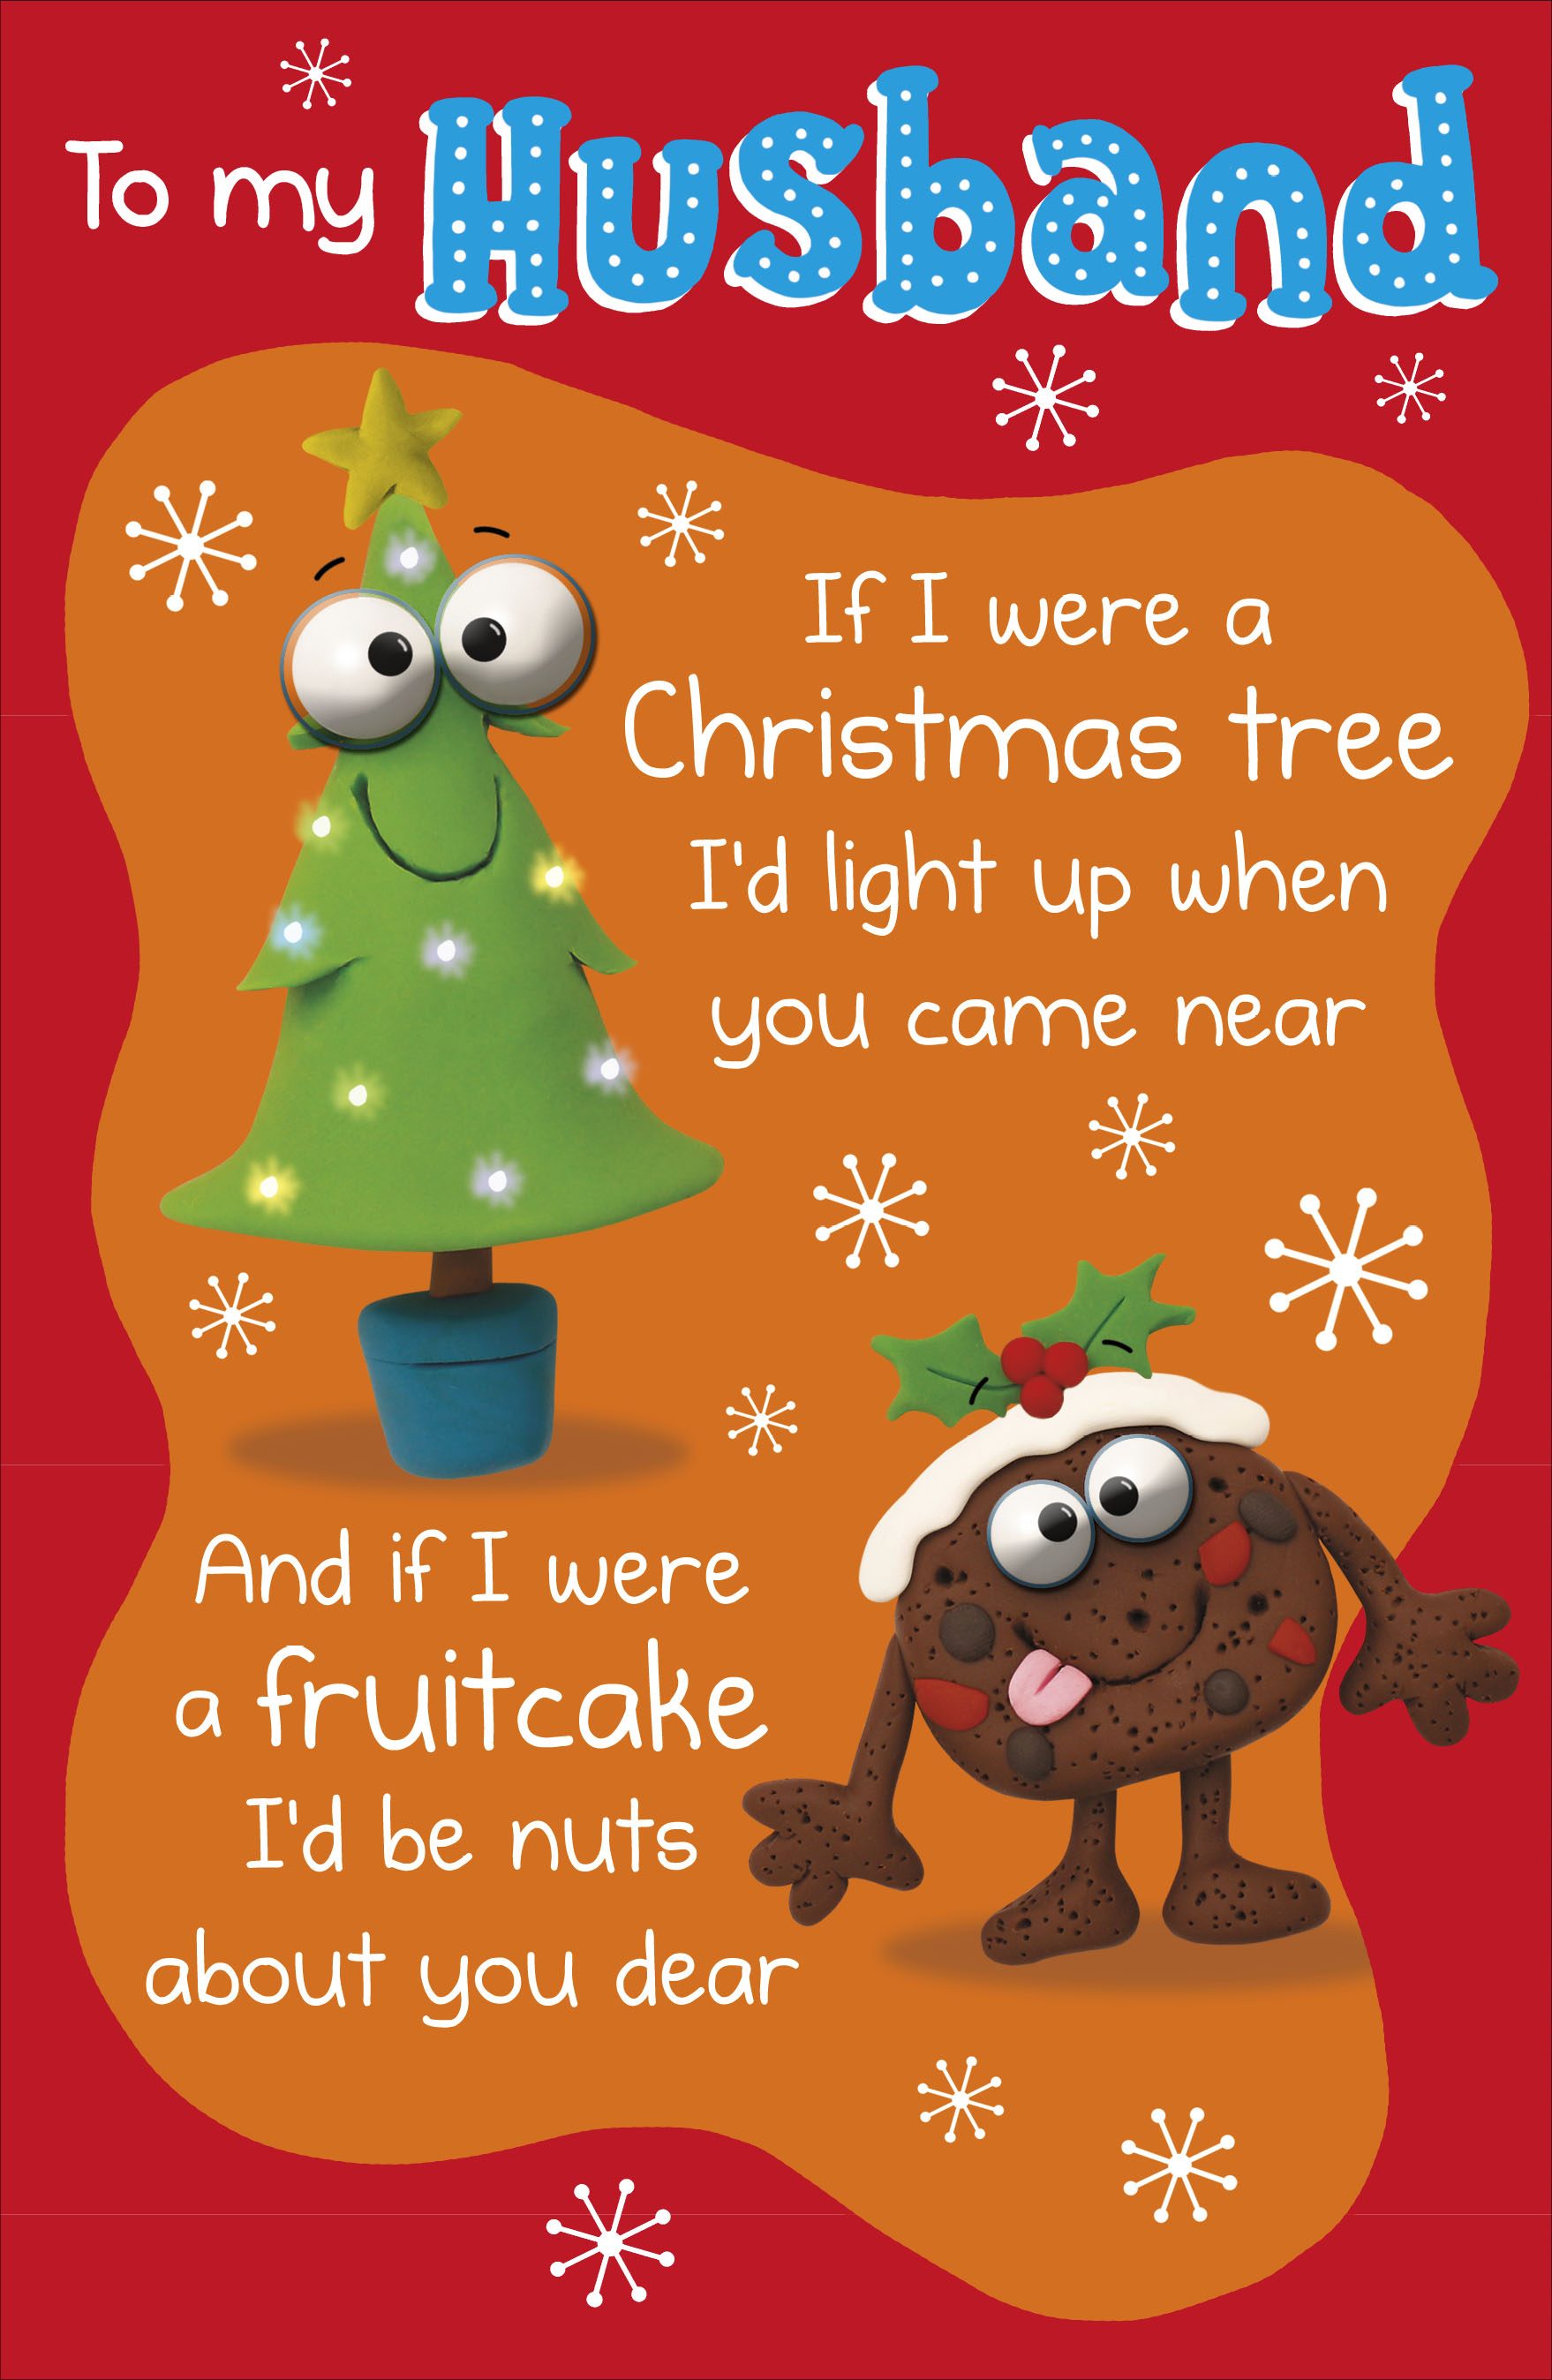 Christmas Greeting Card Images.To My Husband Funny Verse Christmas Greeting Card